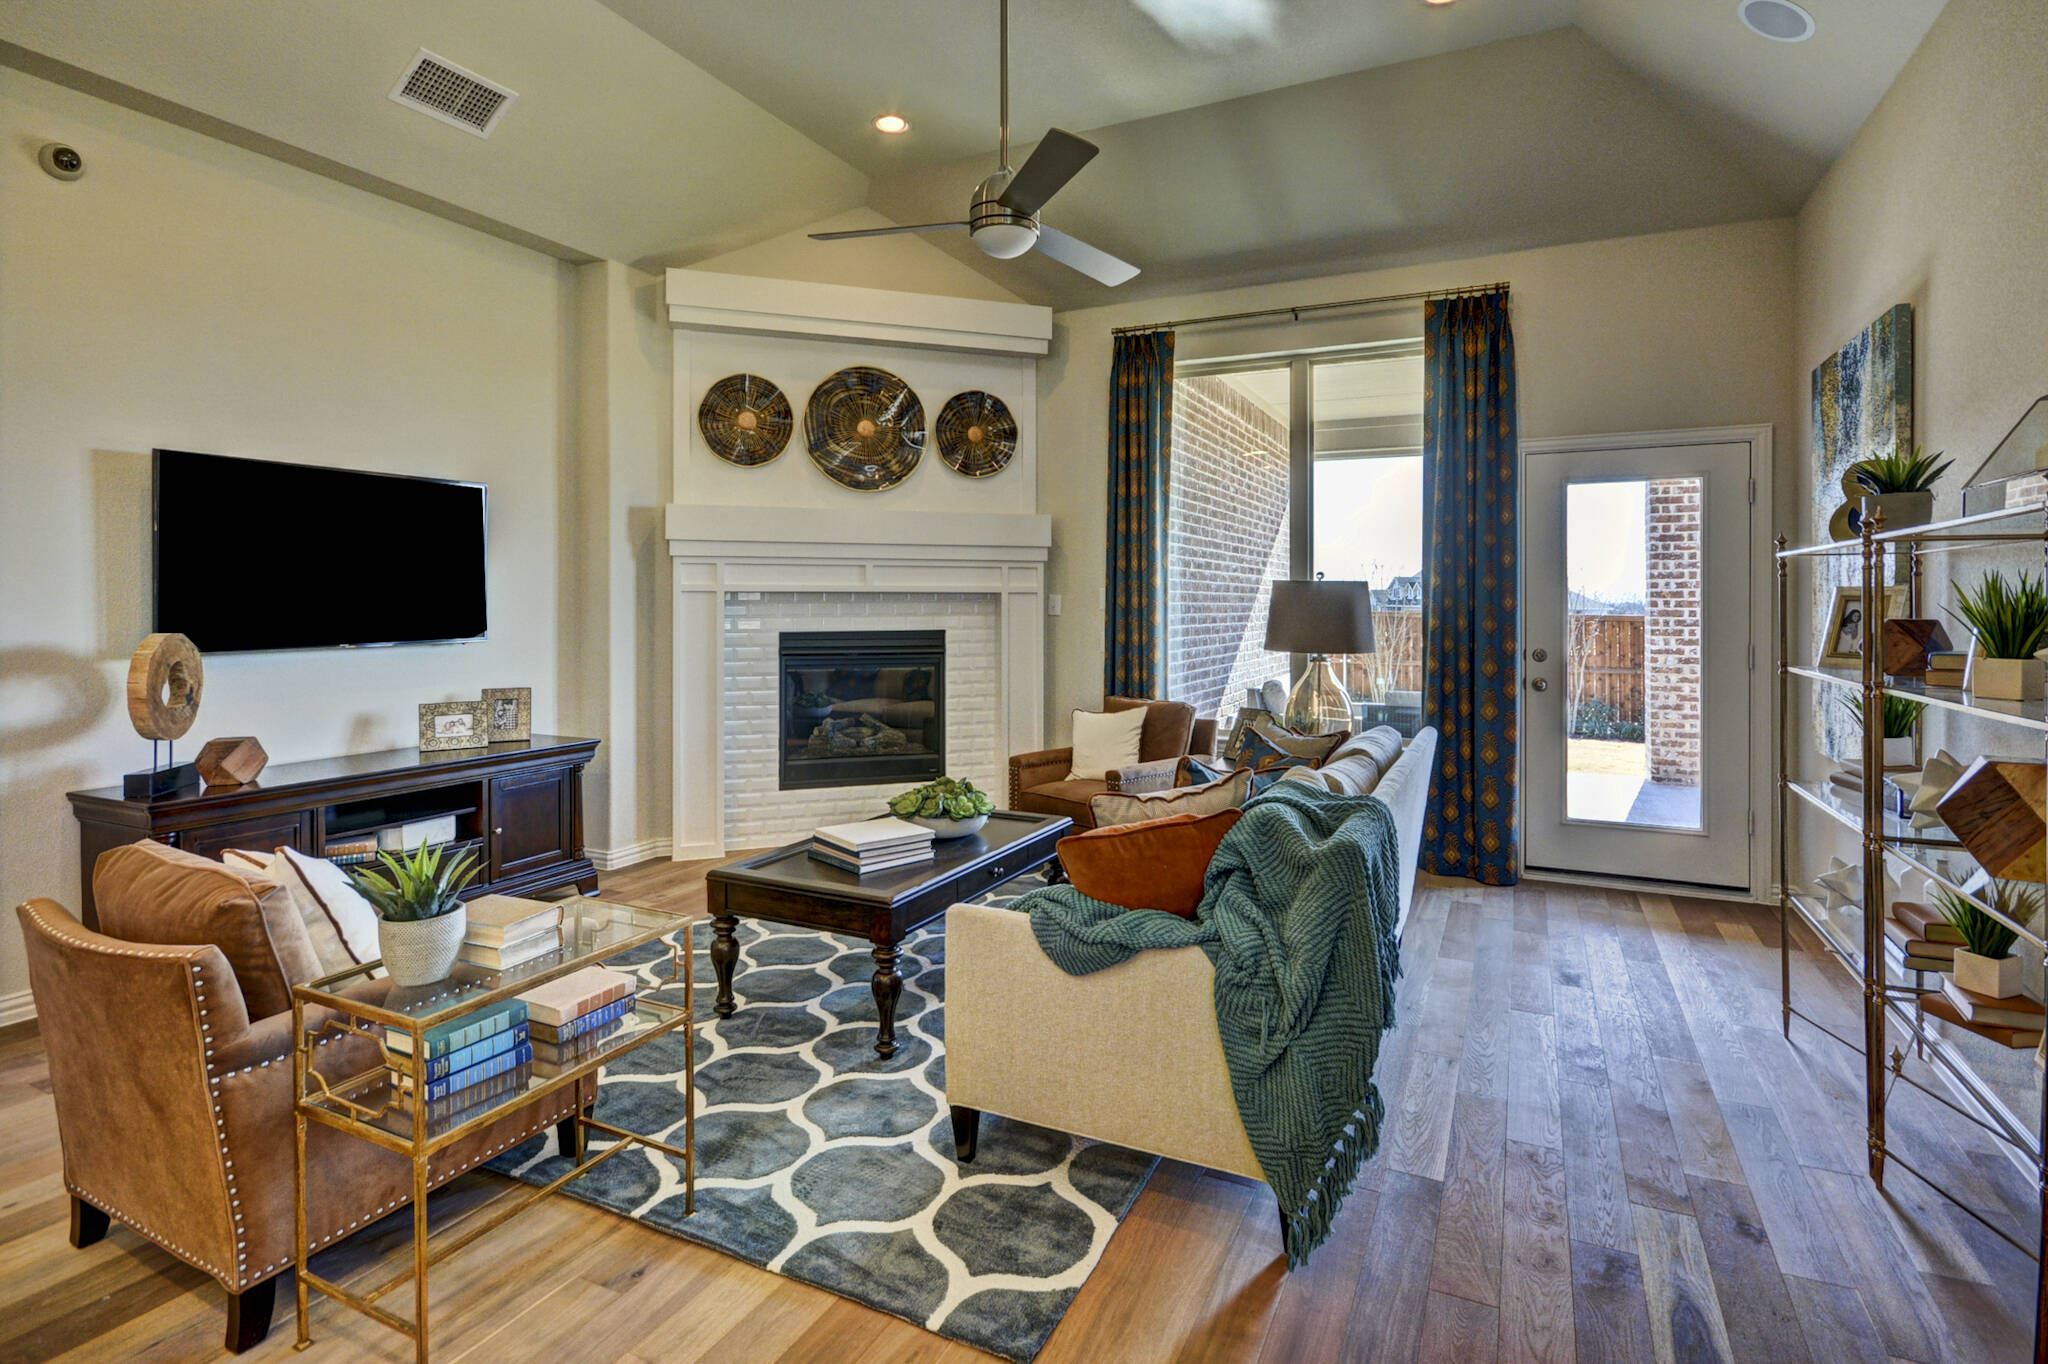 texas- wildridge-lakeway-family room-1la